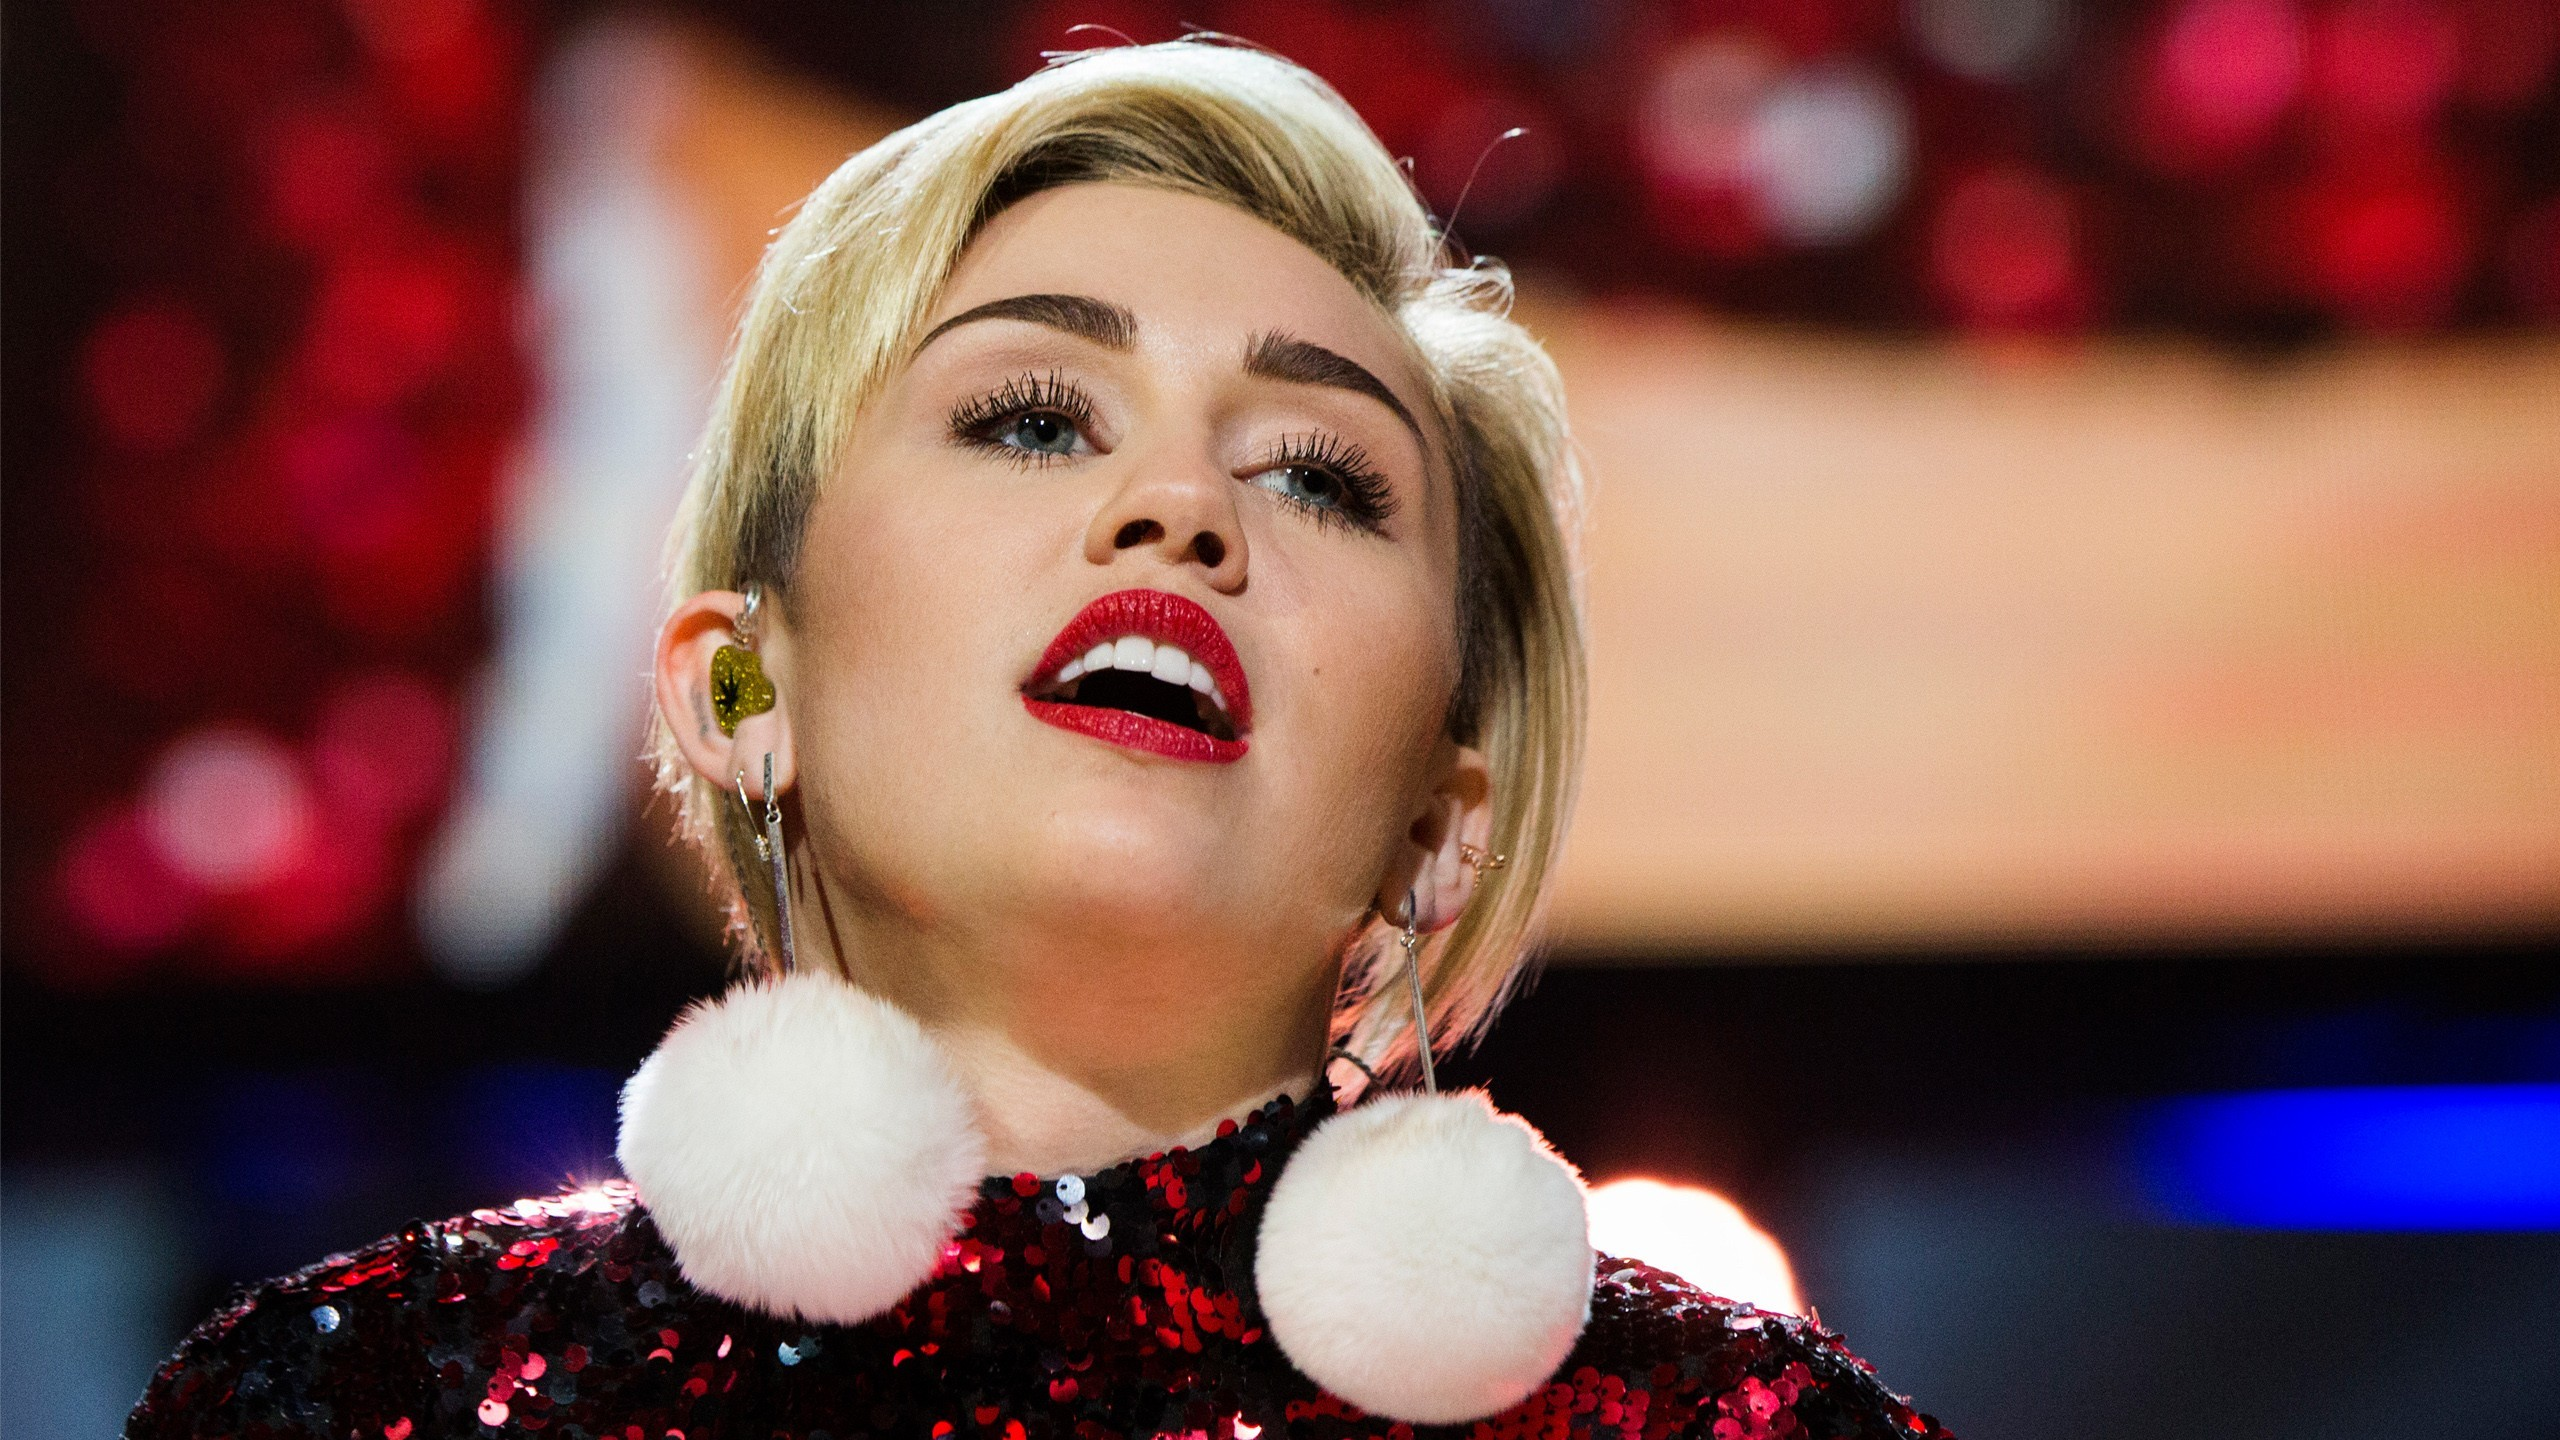 2560x1440 ... x 1440 Original. Description: Download Miley Cyrus 84 Miley Cyrus  wallpaper ...